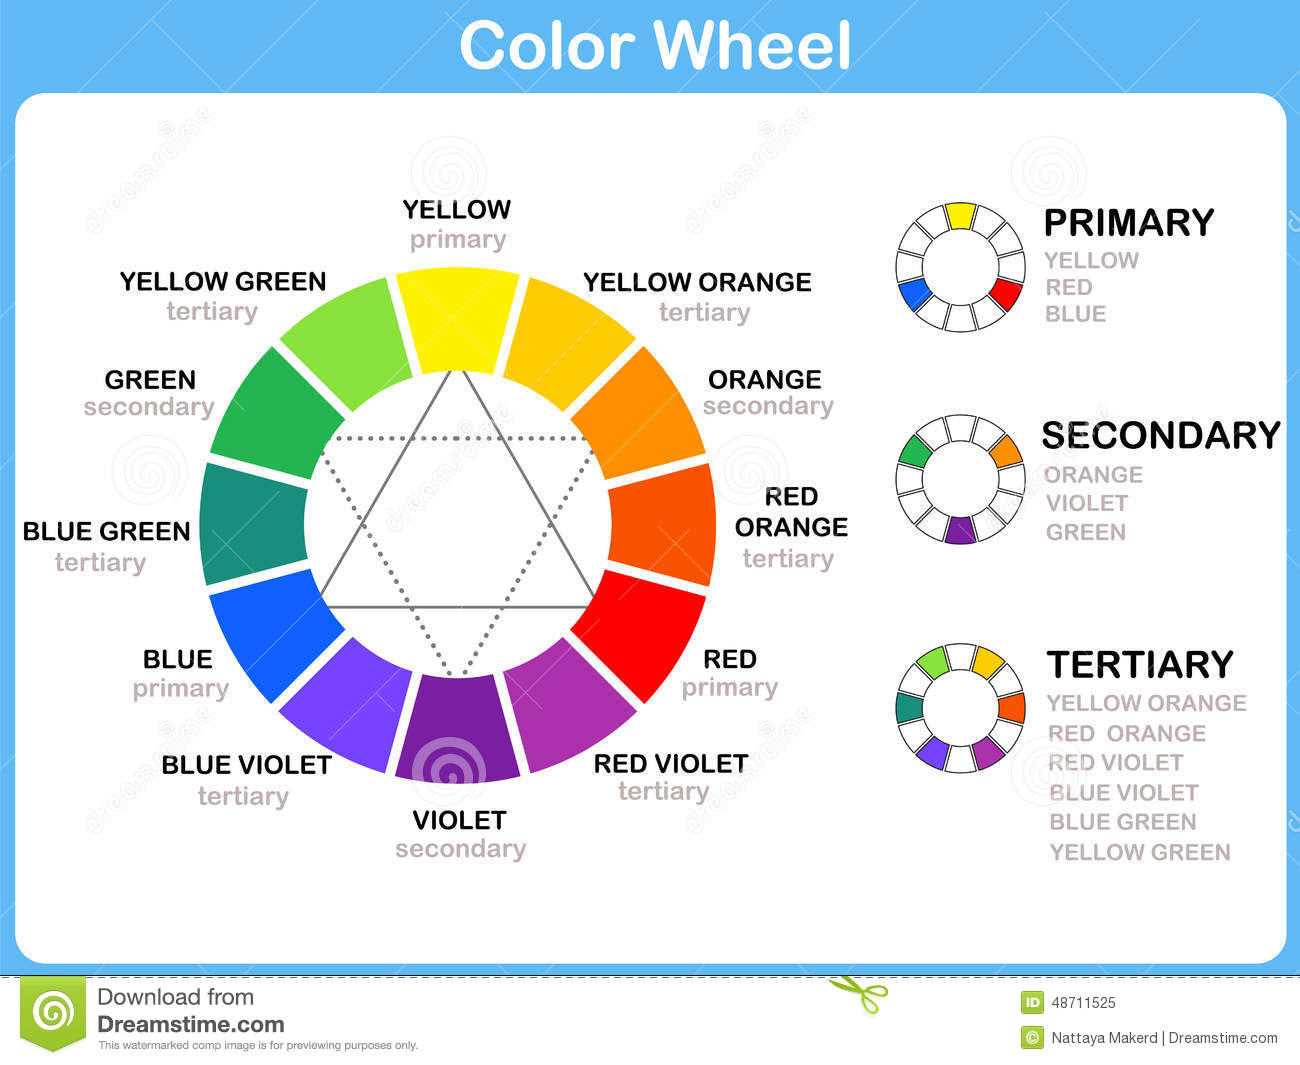 Color Wheel Worksheet - Red Blue Yellow color : for kidsn.